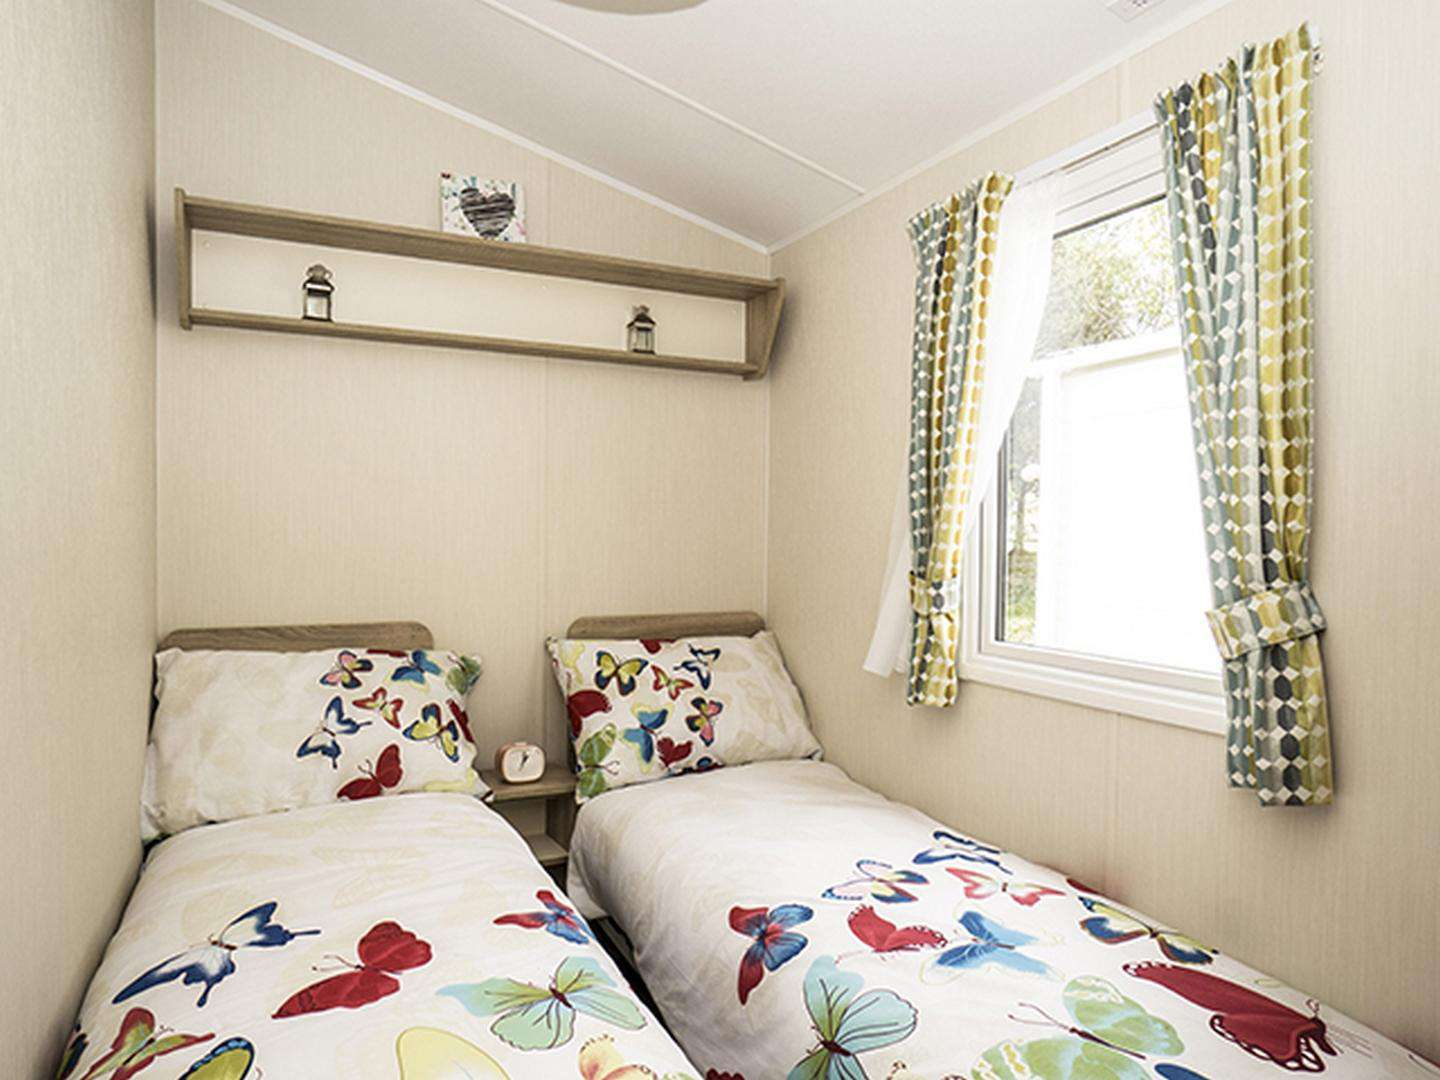 Check out our great reviews on Google for Southview Holiday Park